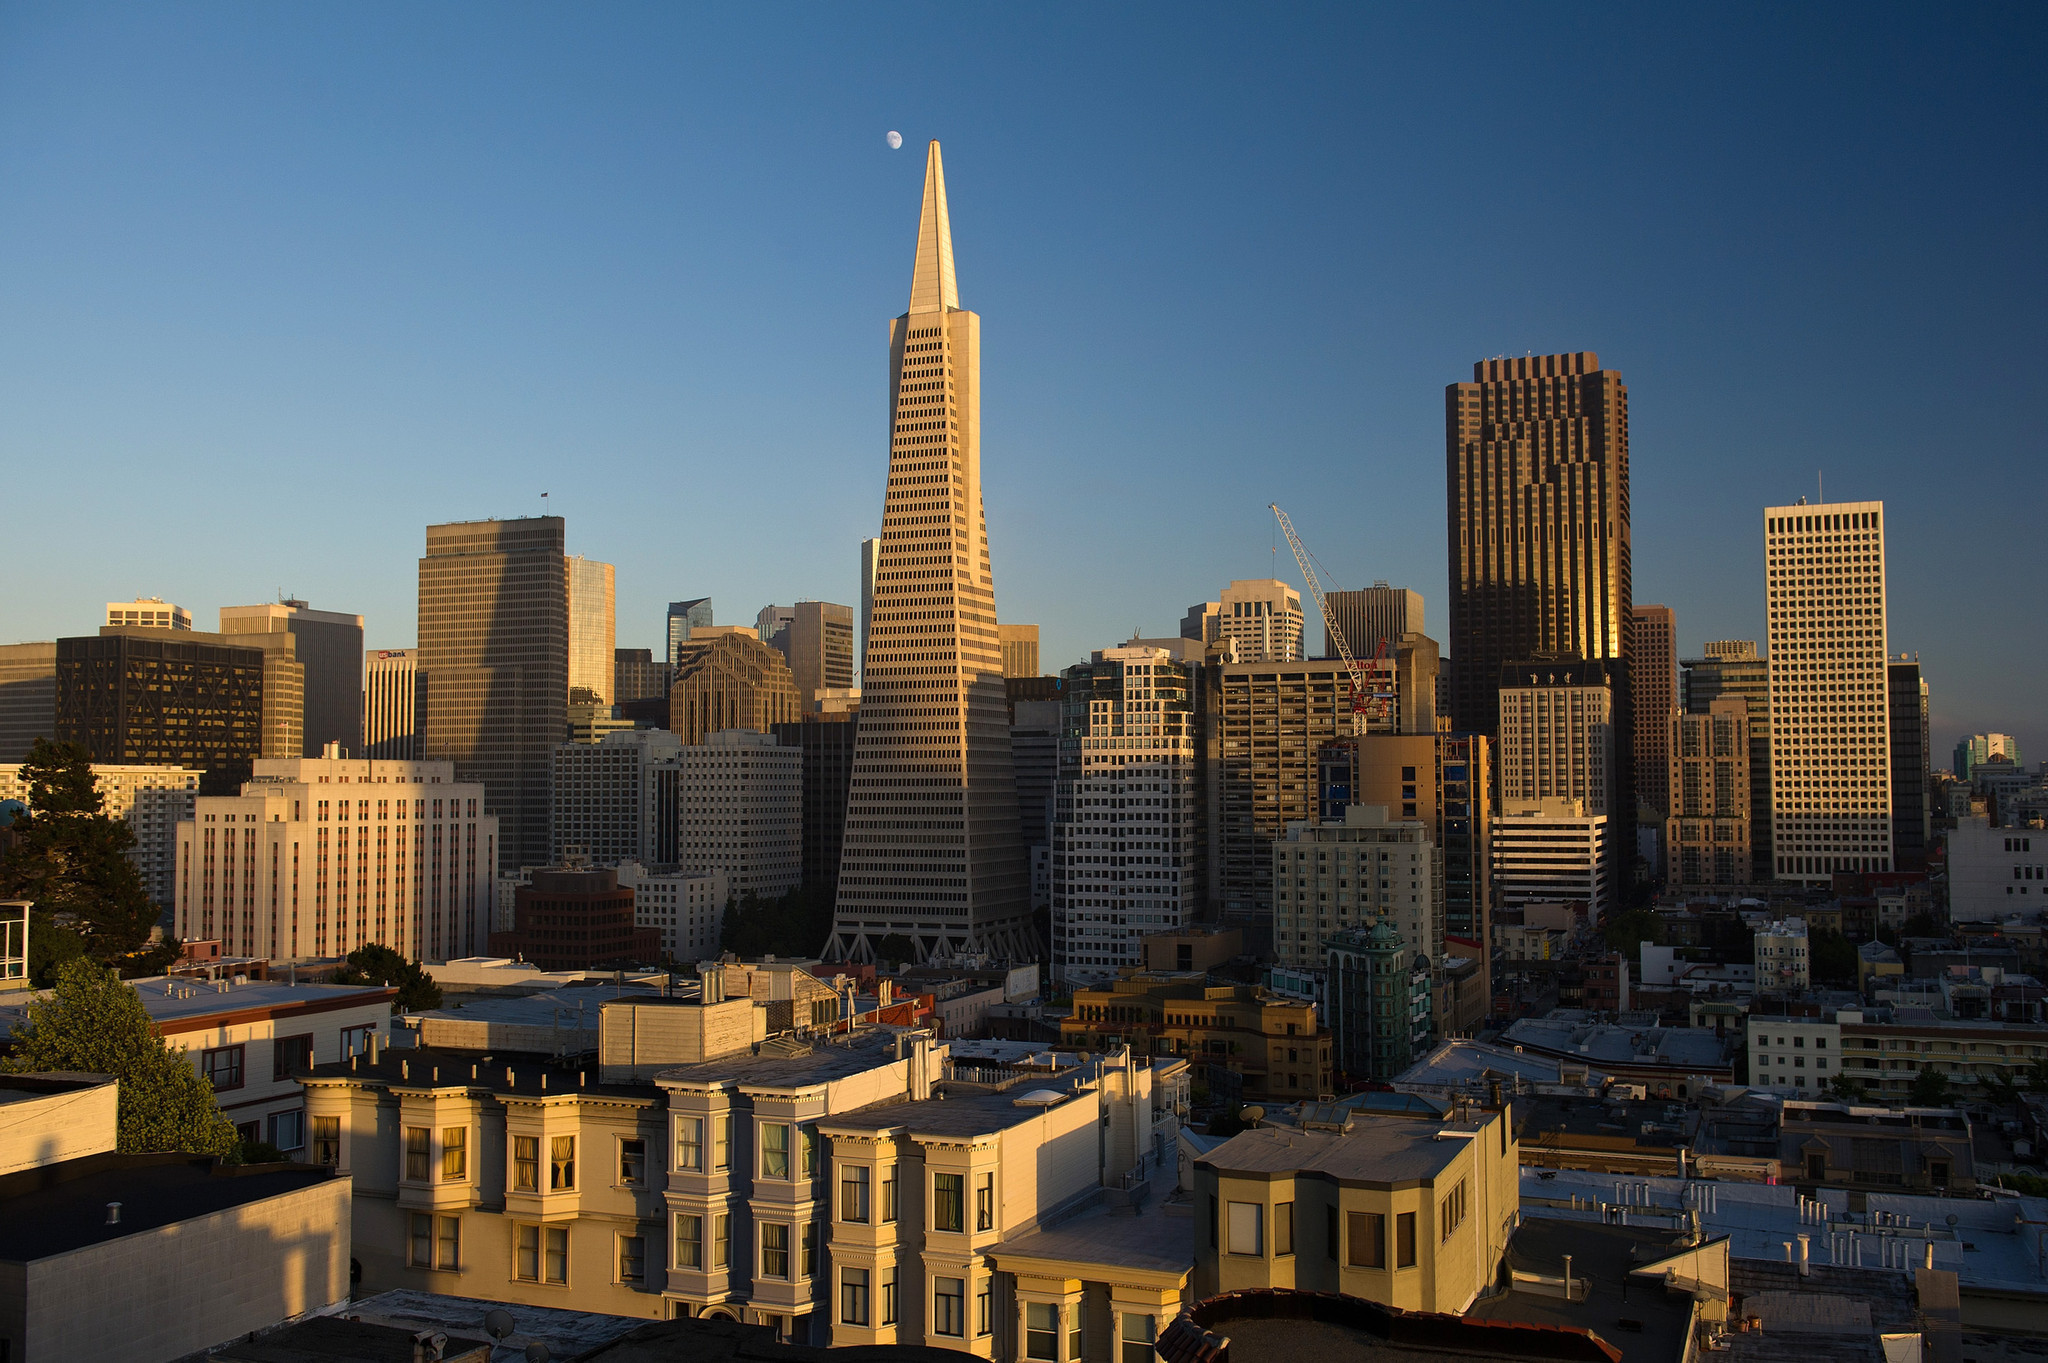 San Francisco surges past L.A. as home to 'ultra rich,' survey finds